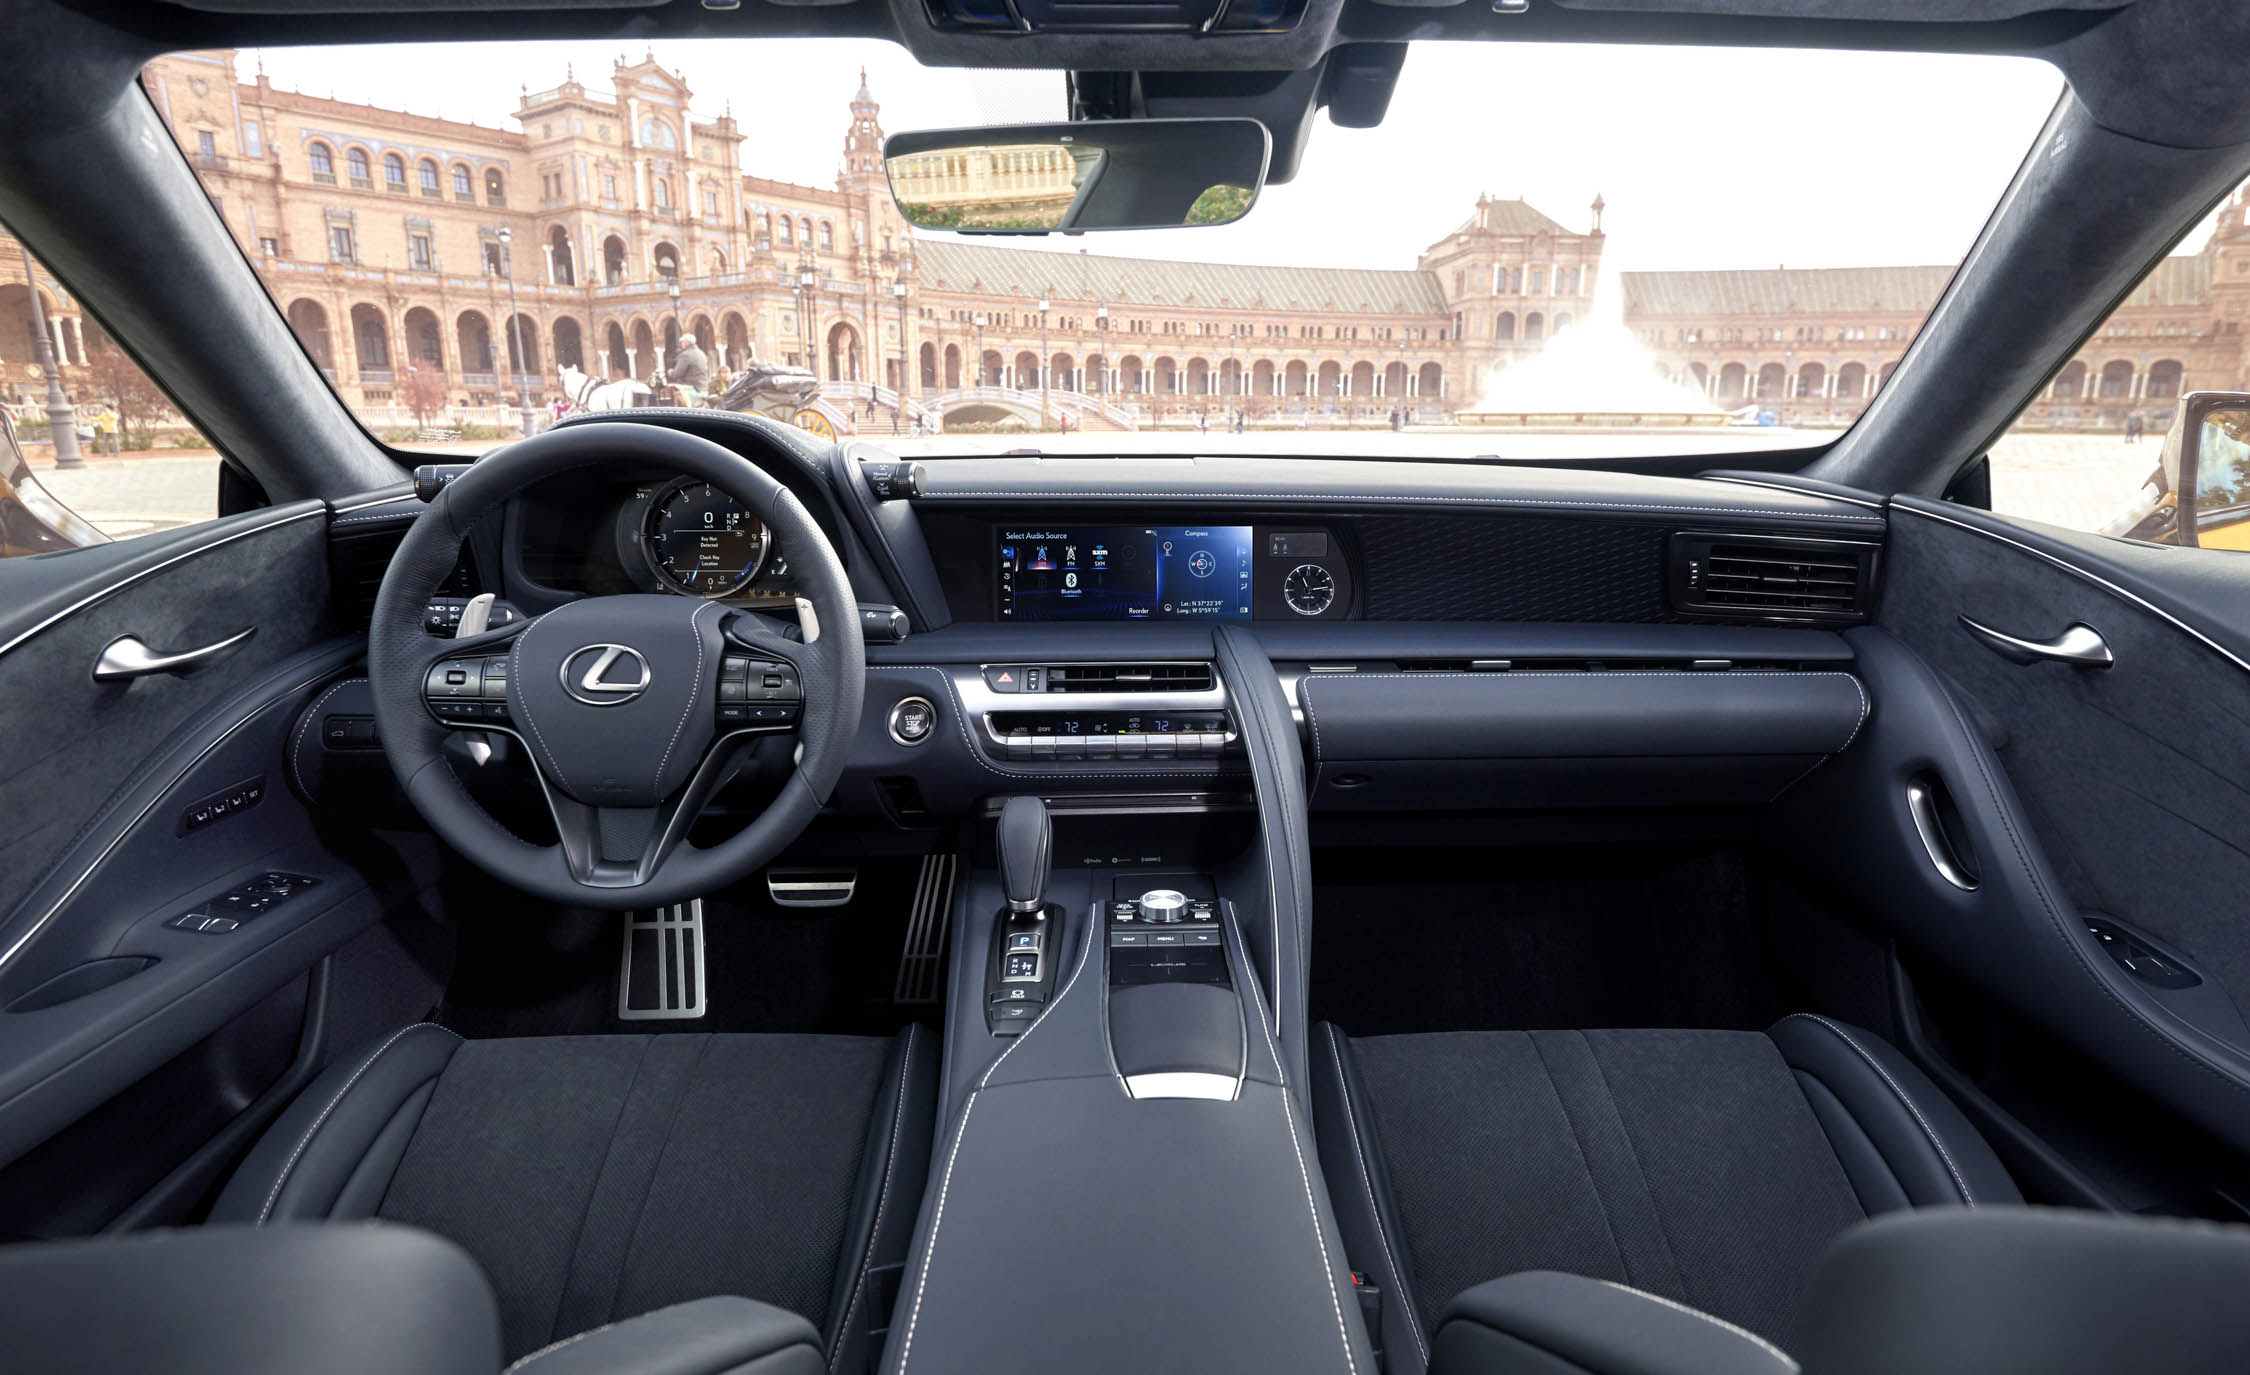 2018 Lexus Lc 500 Black Interior (Photo 8 of 84)